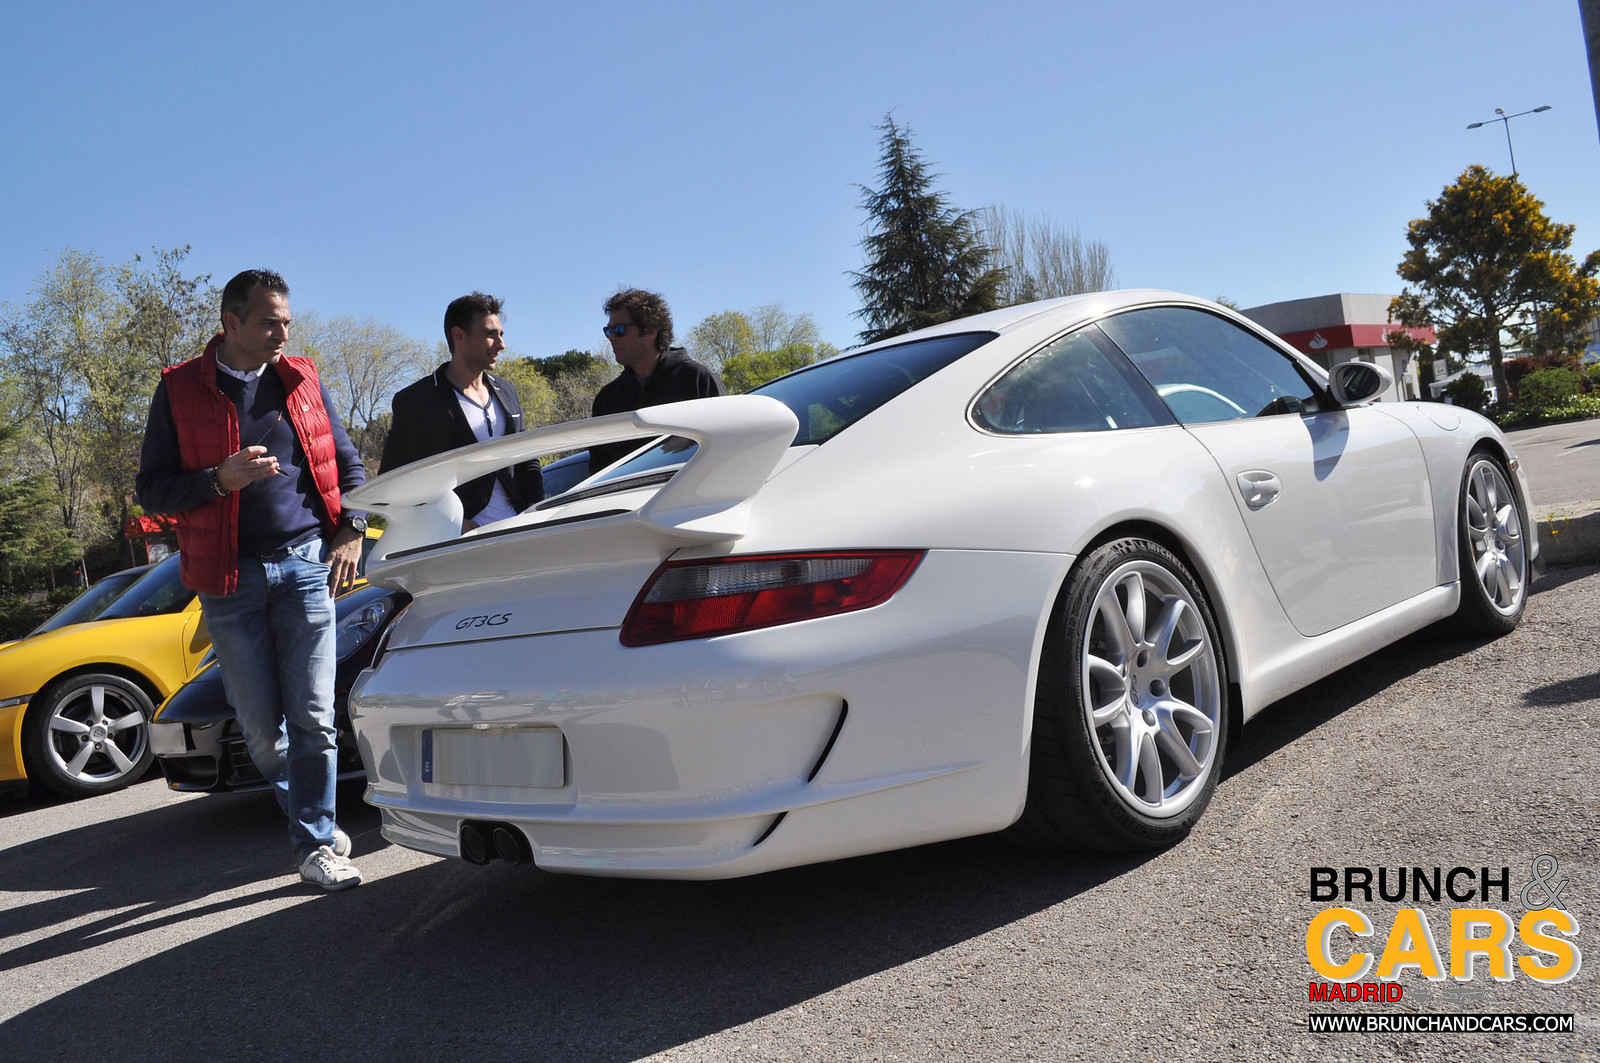 Brunch and Cars Madrid - Round 5